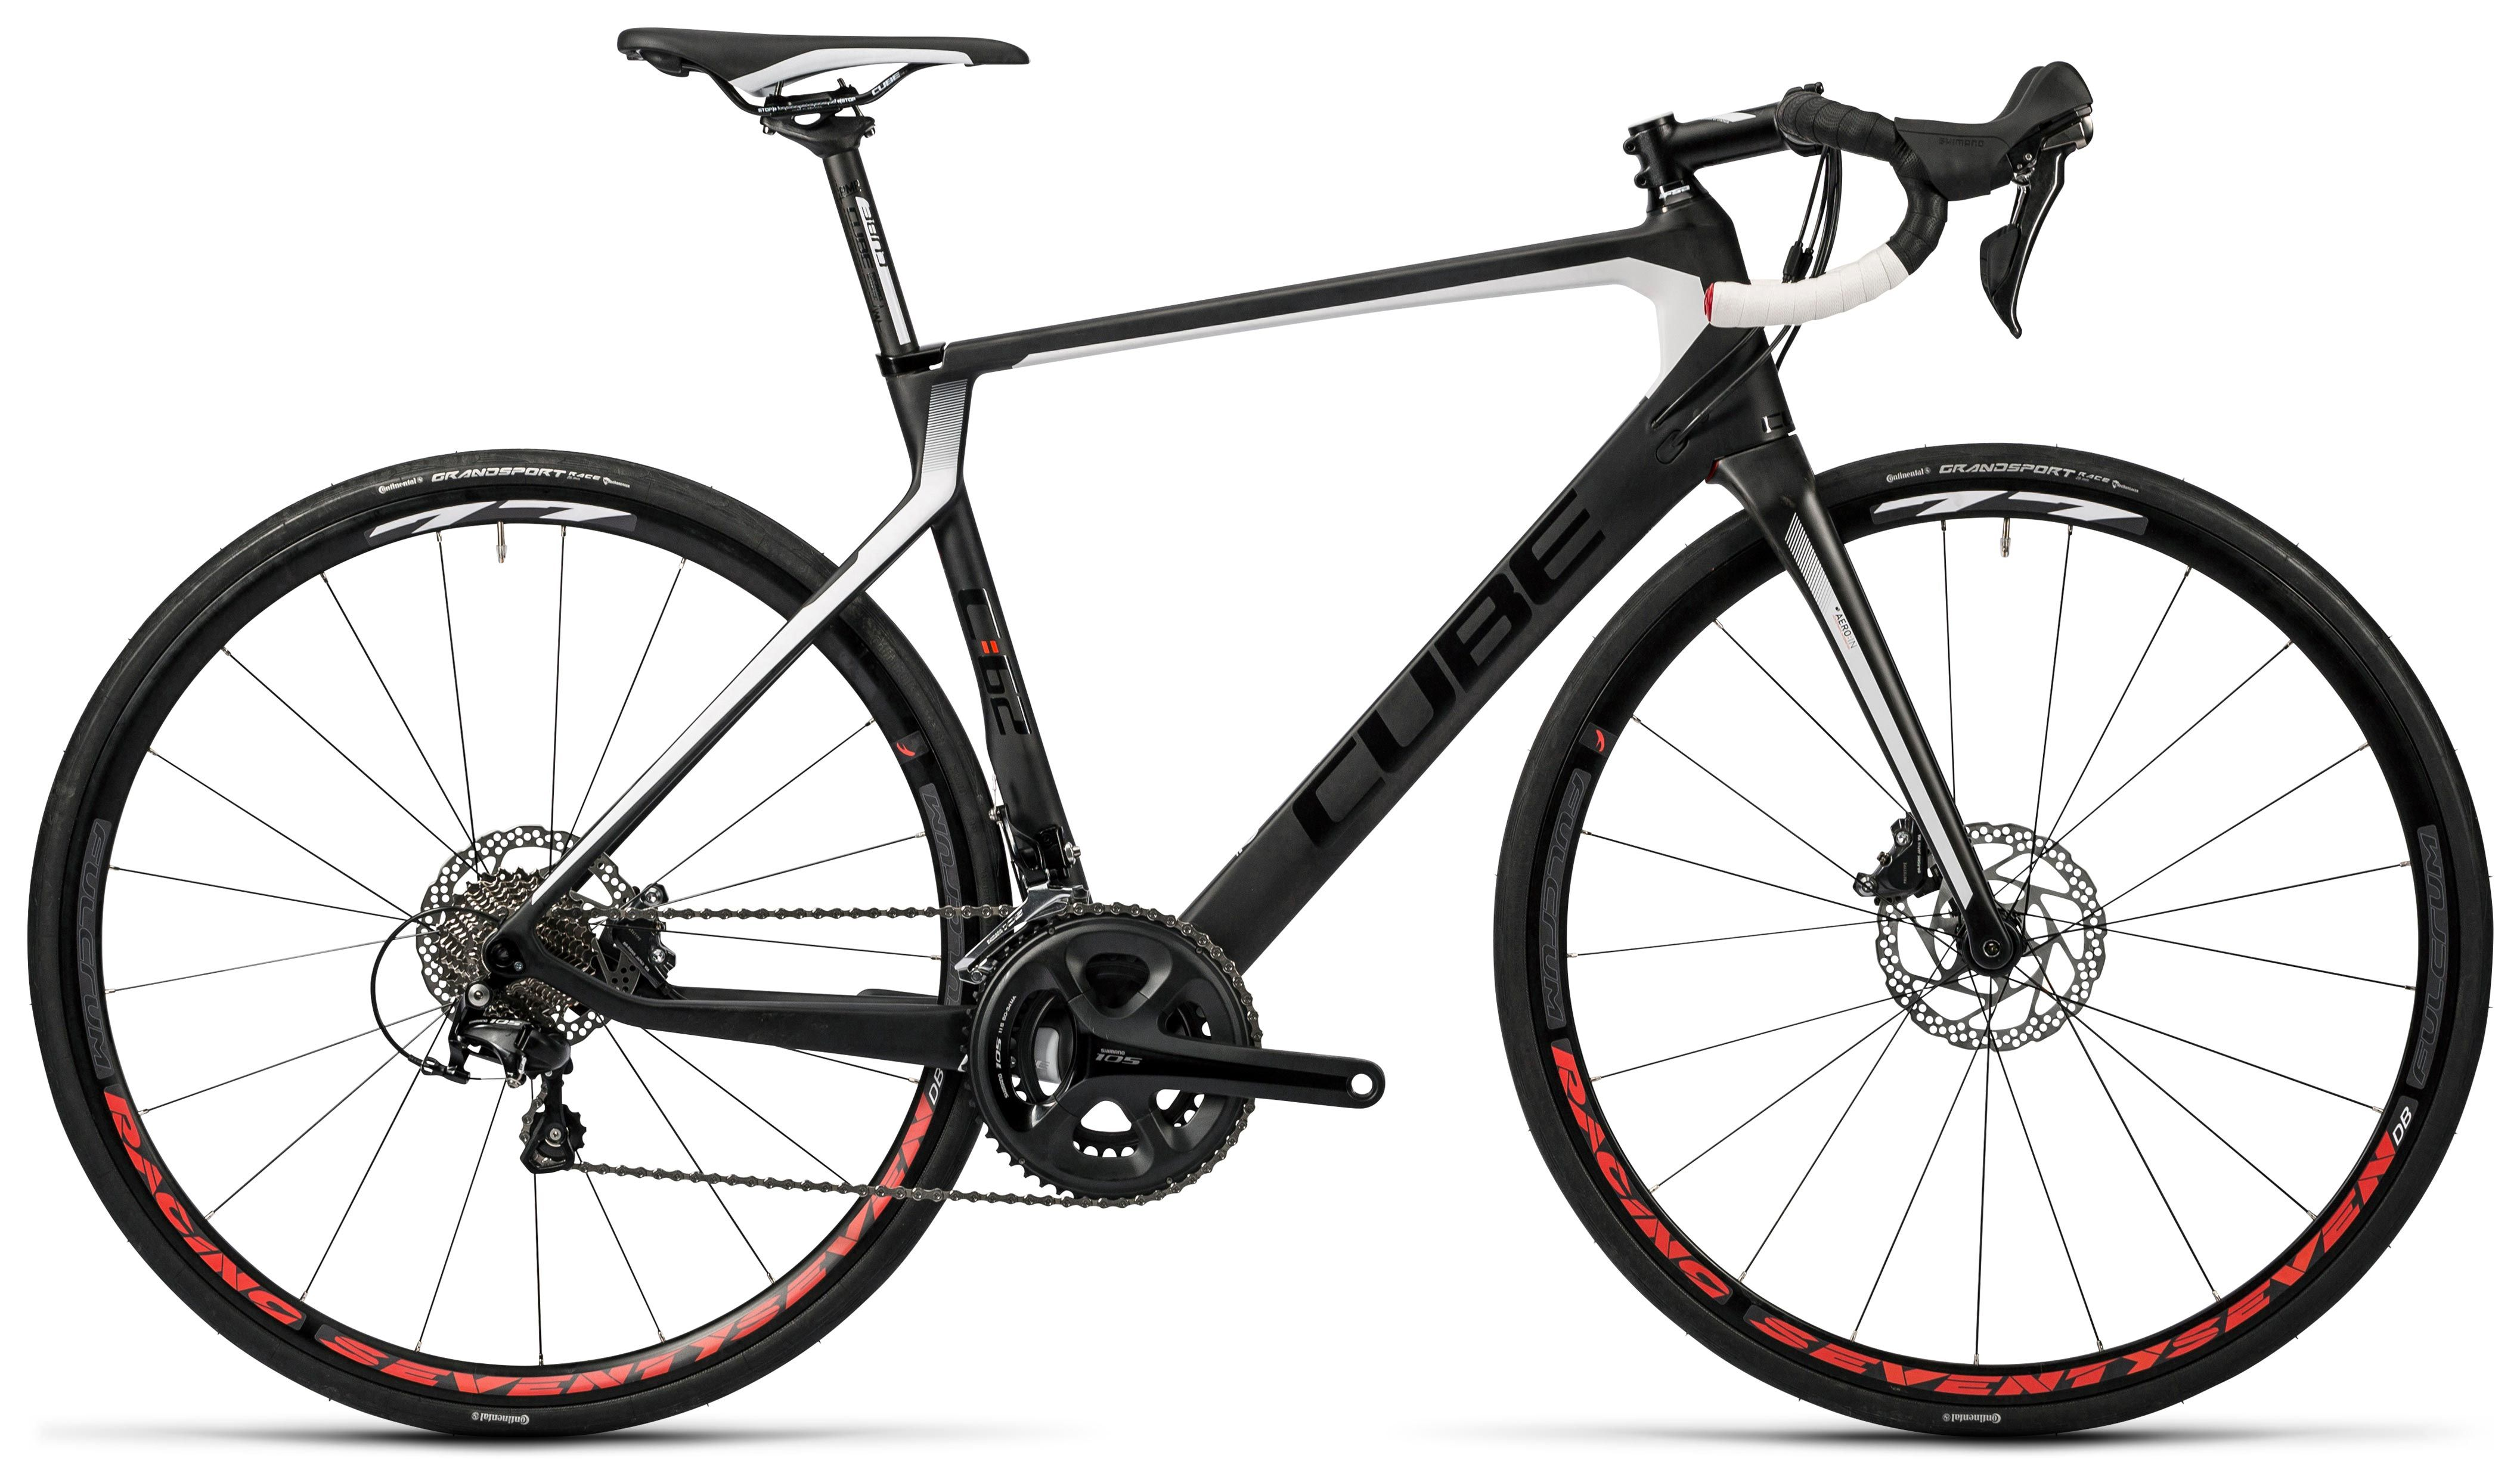 Cube Reaction Carbon Lauf Google Trsene With Images Bike Swag Cube Reaction Bicycle Design